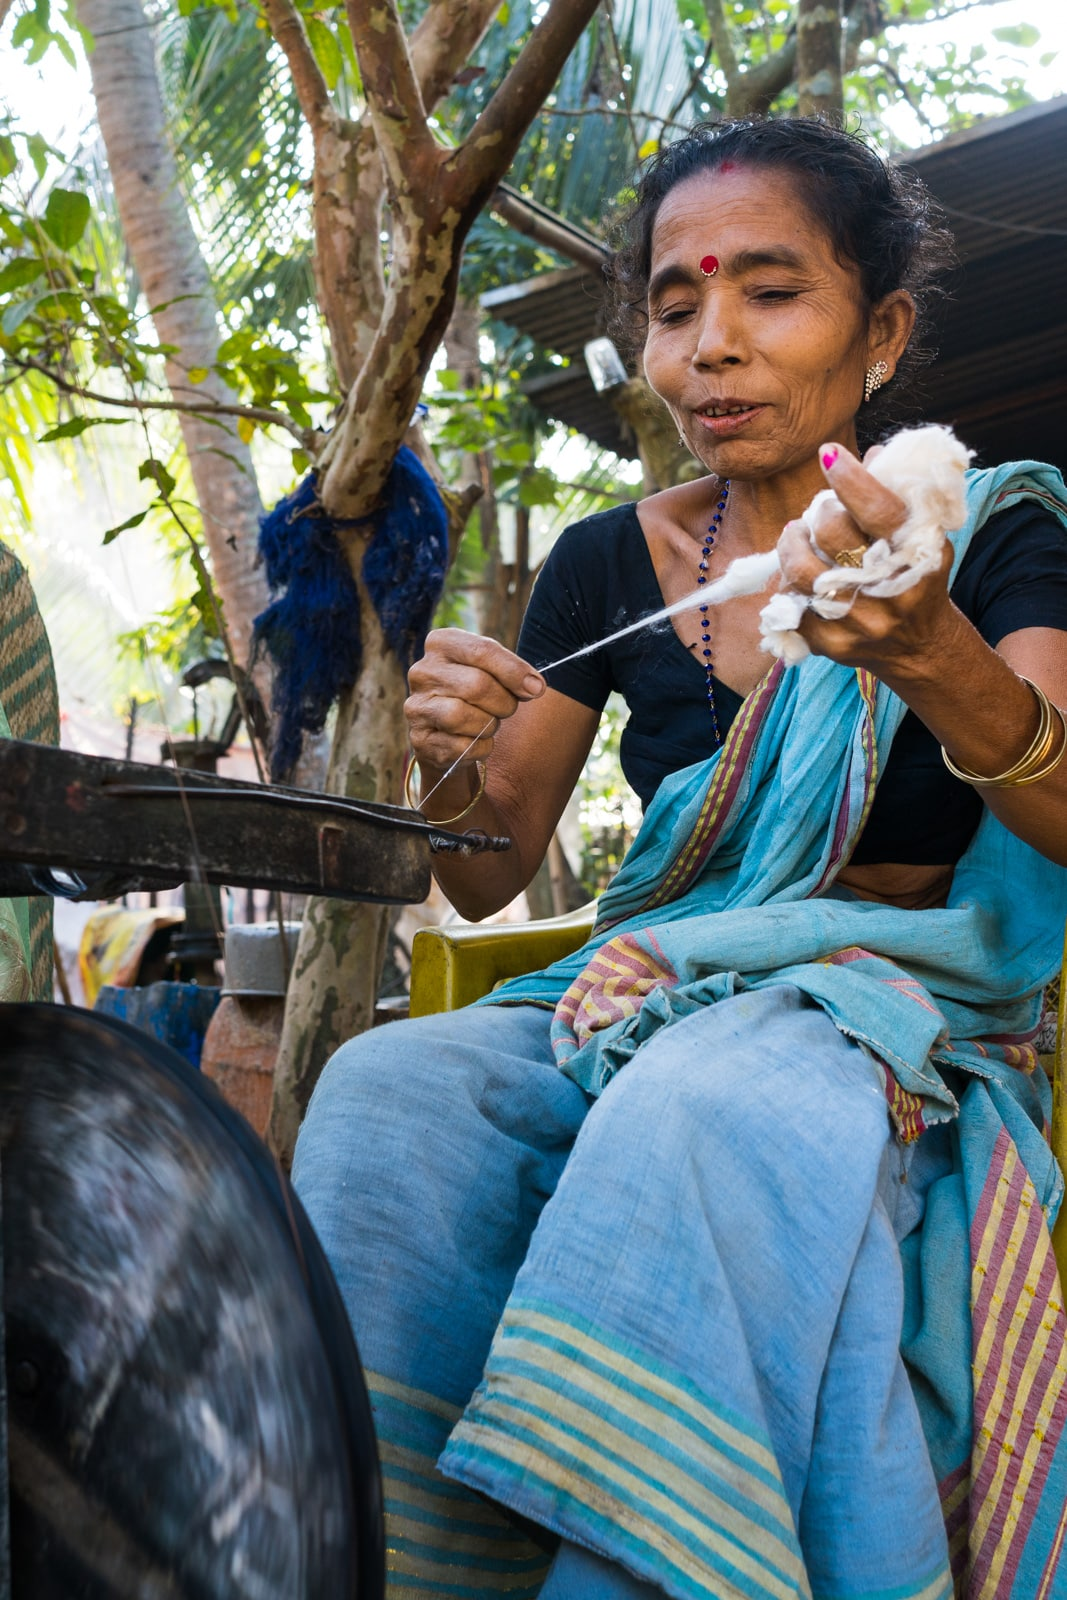 A local woman spinning thread in Assam, India.